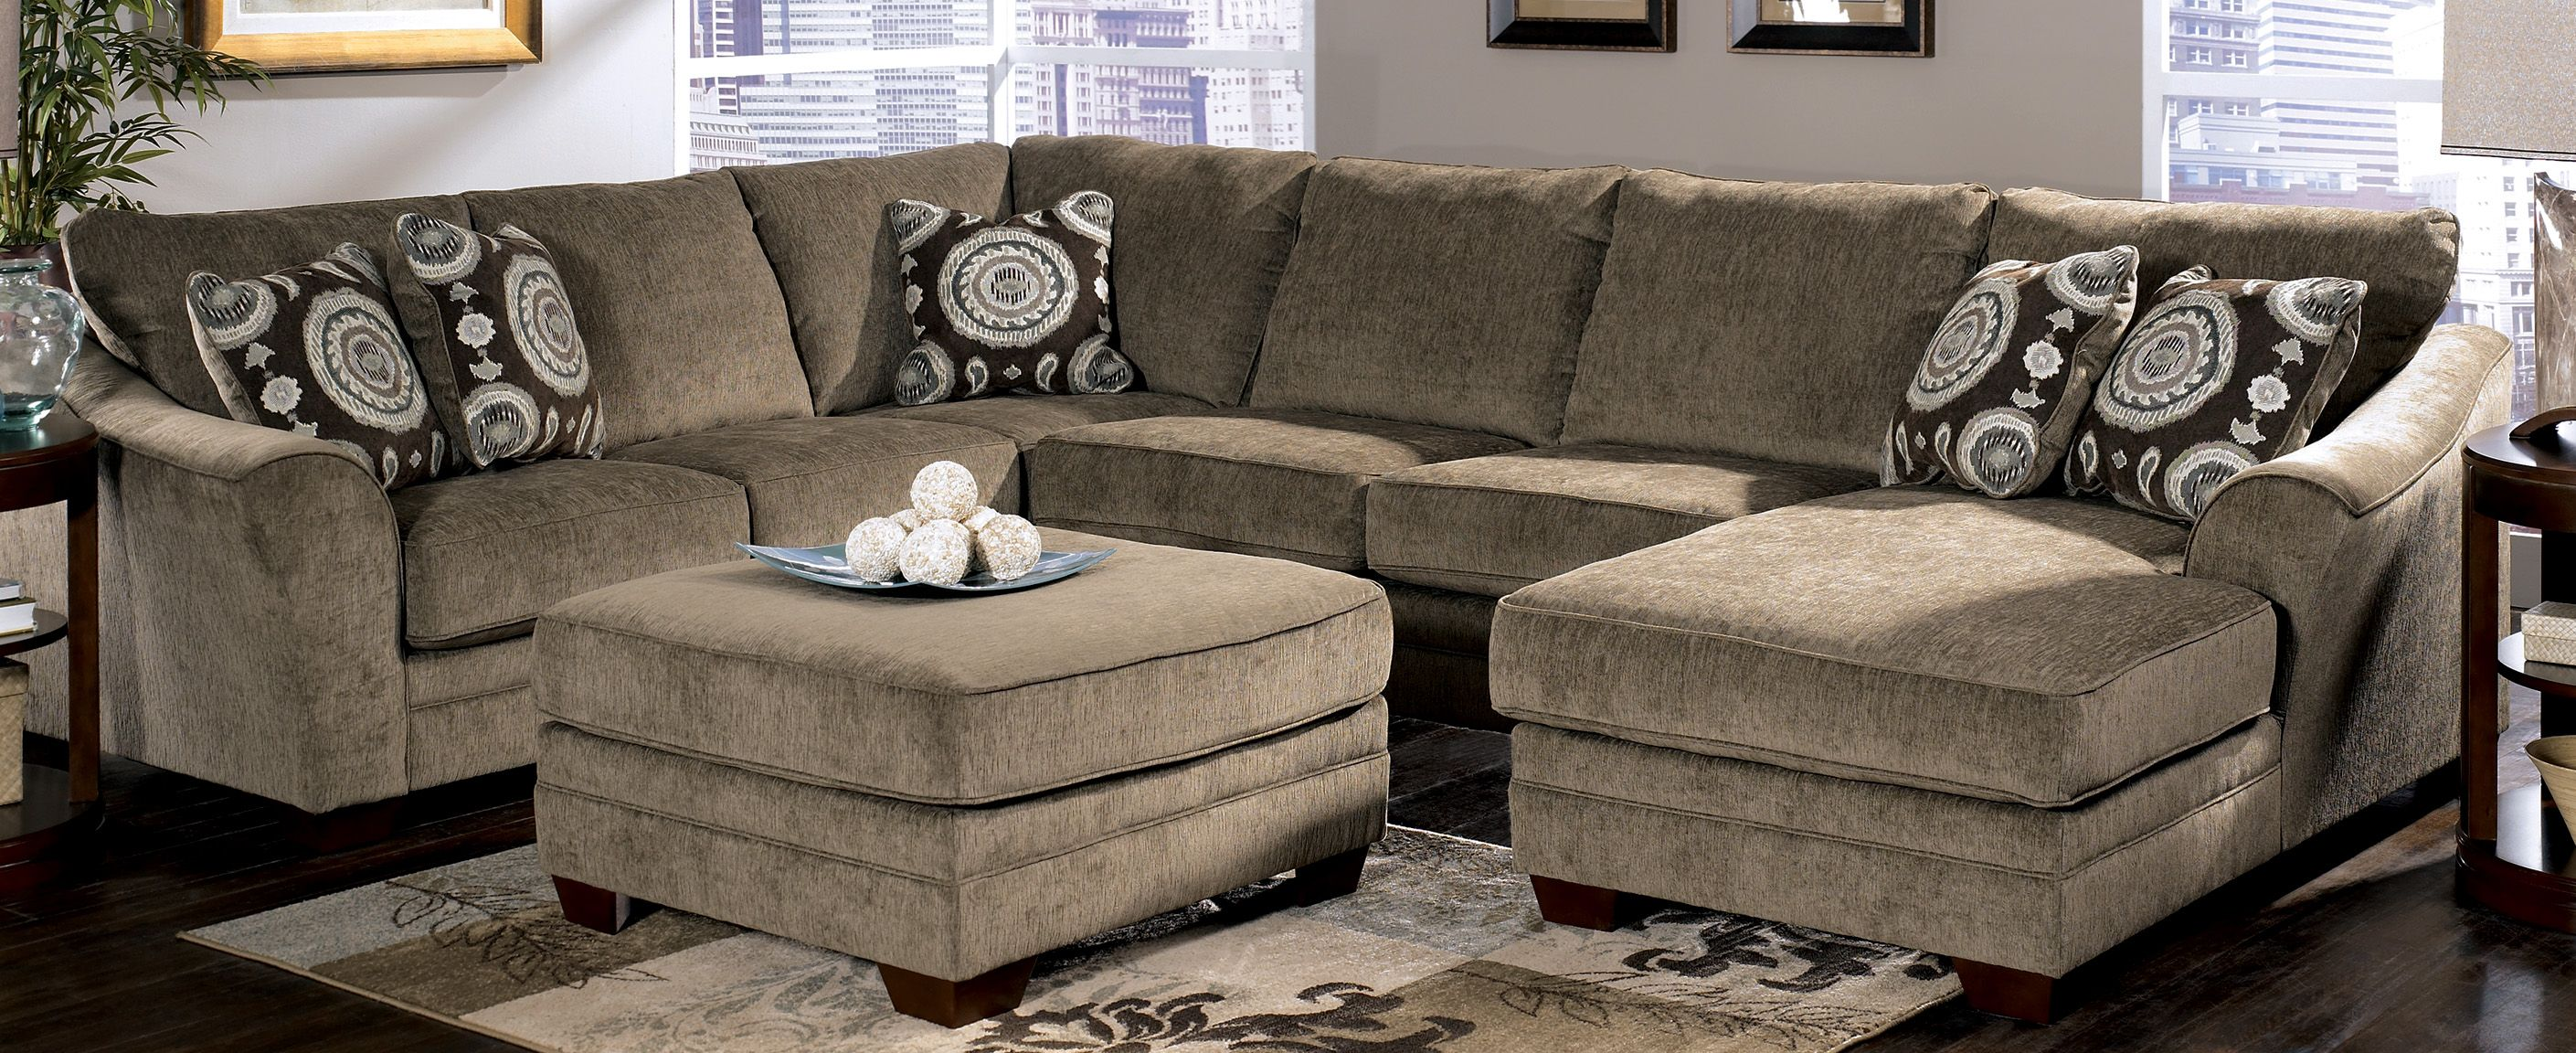 discontinued ashley sofa tables house of fraser sofas discount sectional living room furniture cincinnati